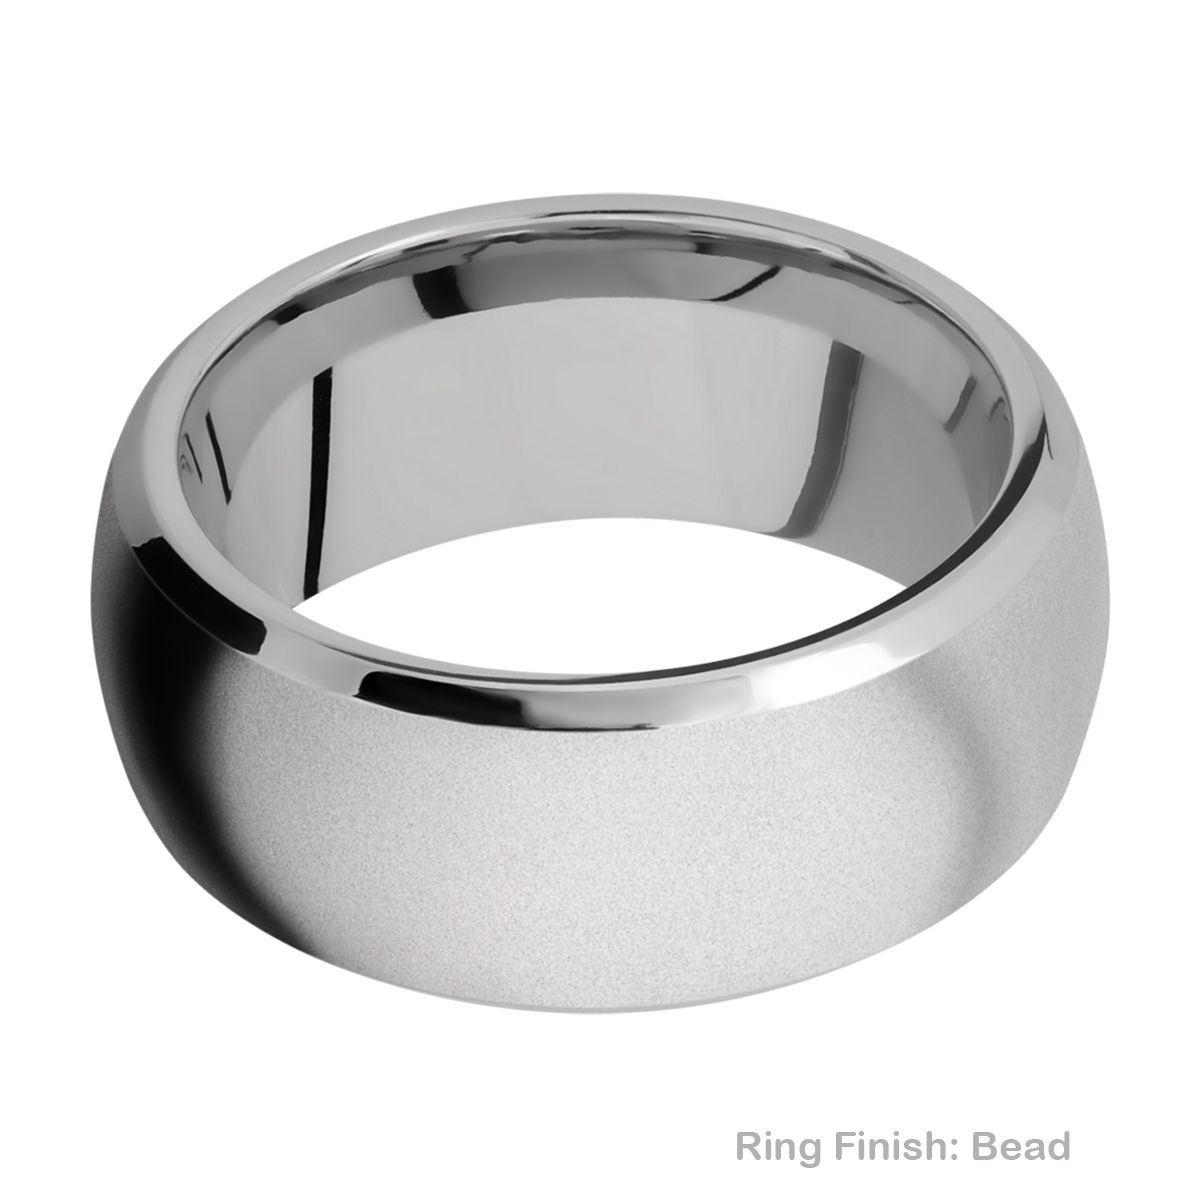 Lashbrook 10DB Titanium Wedding Ring or Band Alternative View 2